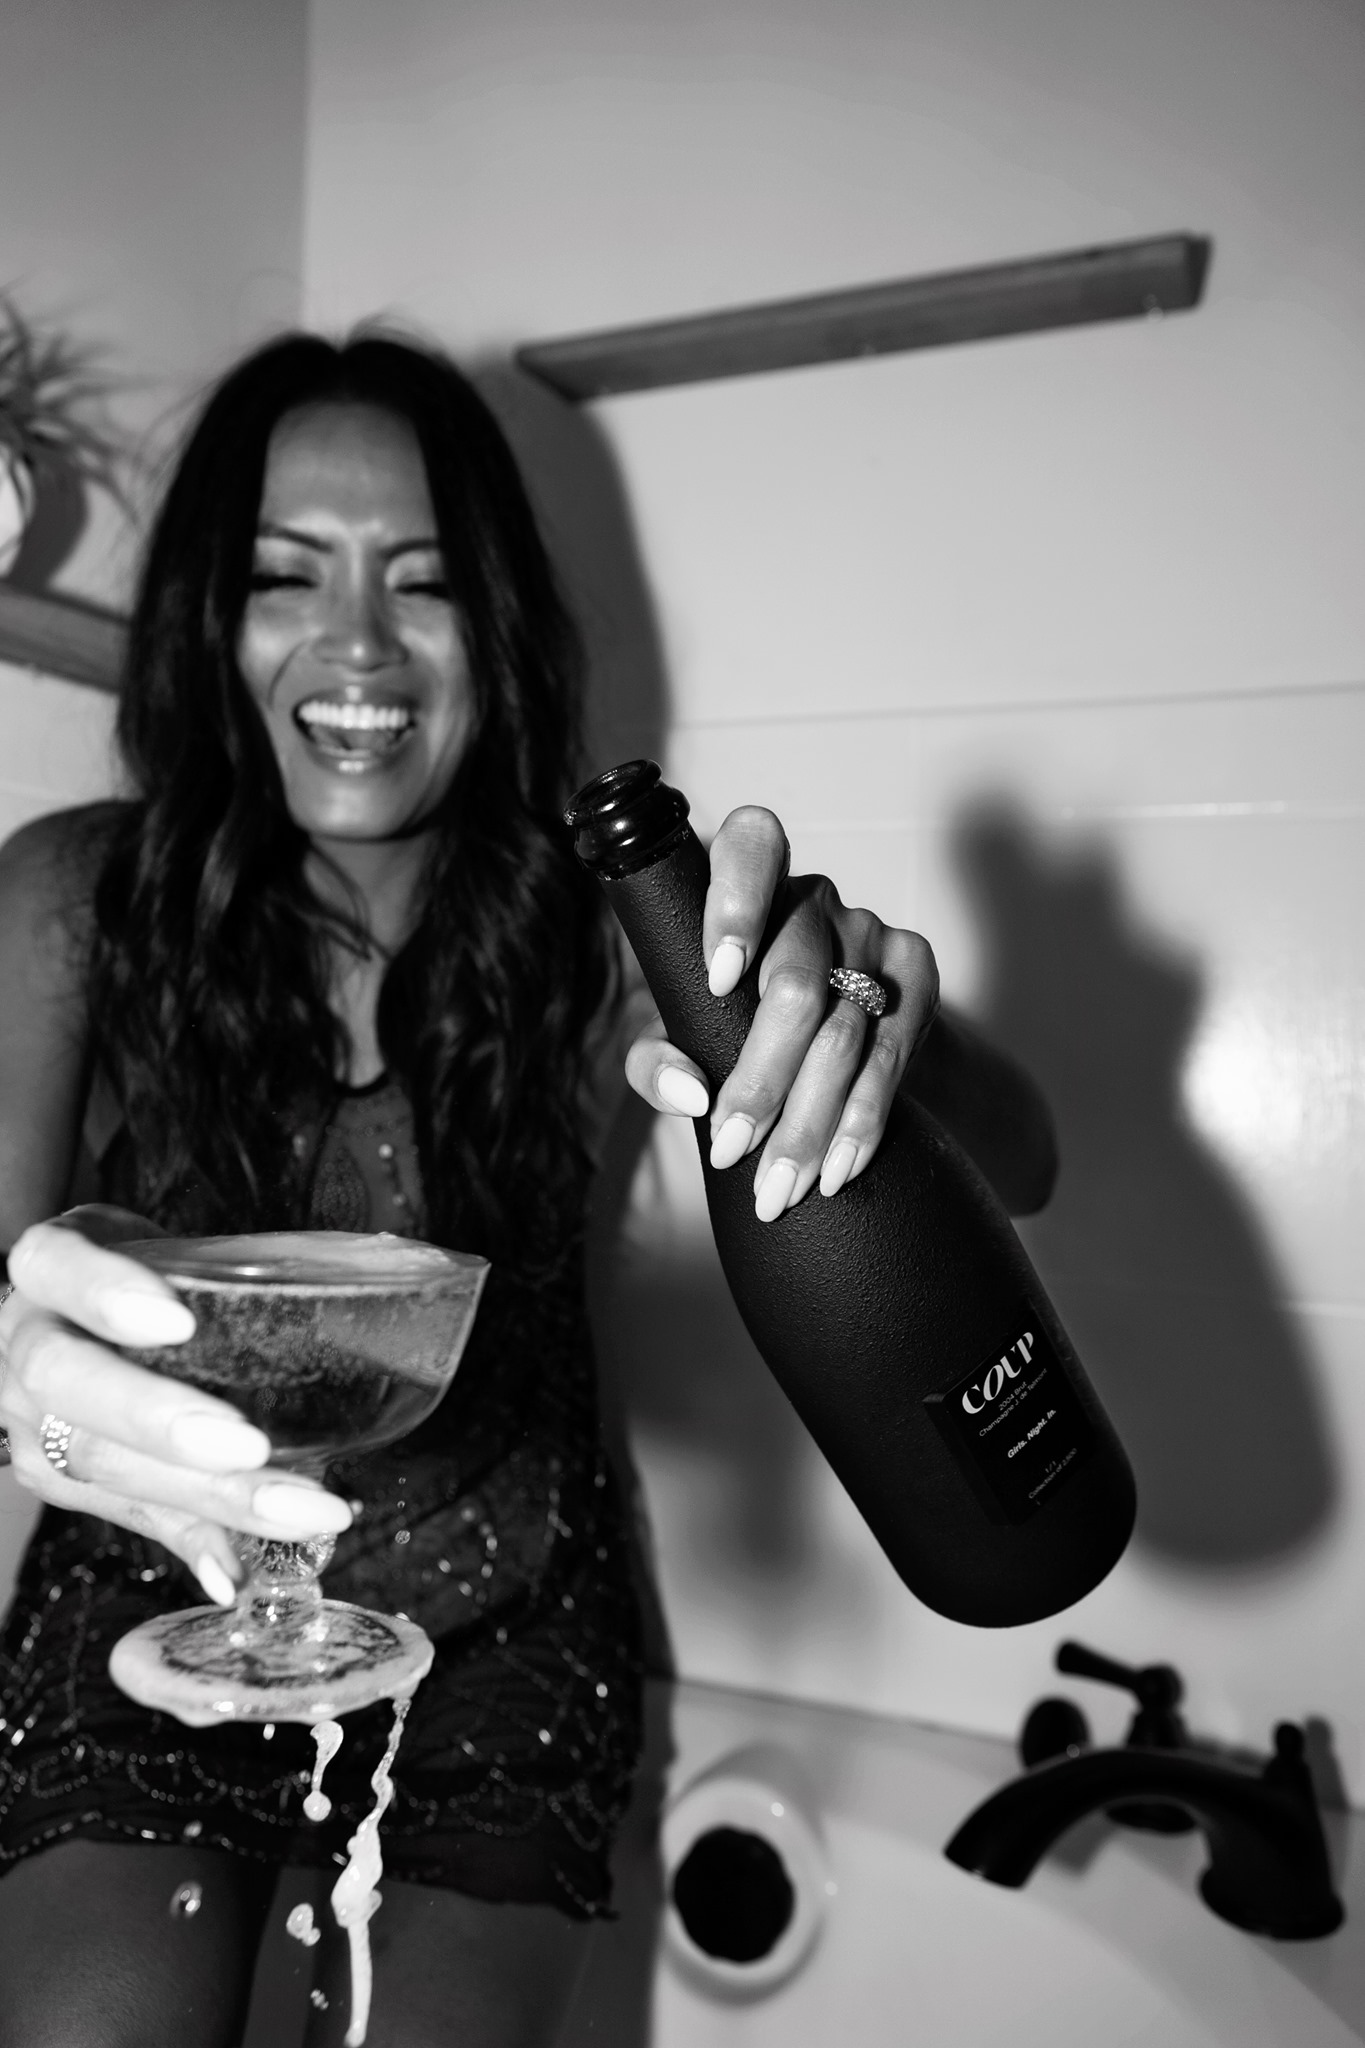 Coup Culture champagne product commercial photography black and white california